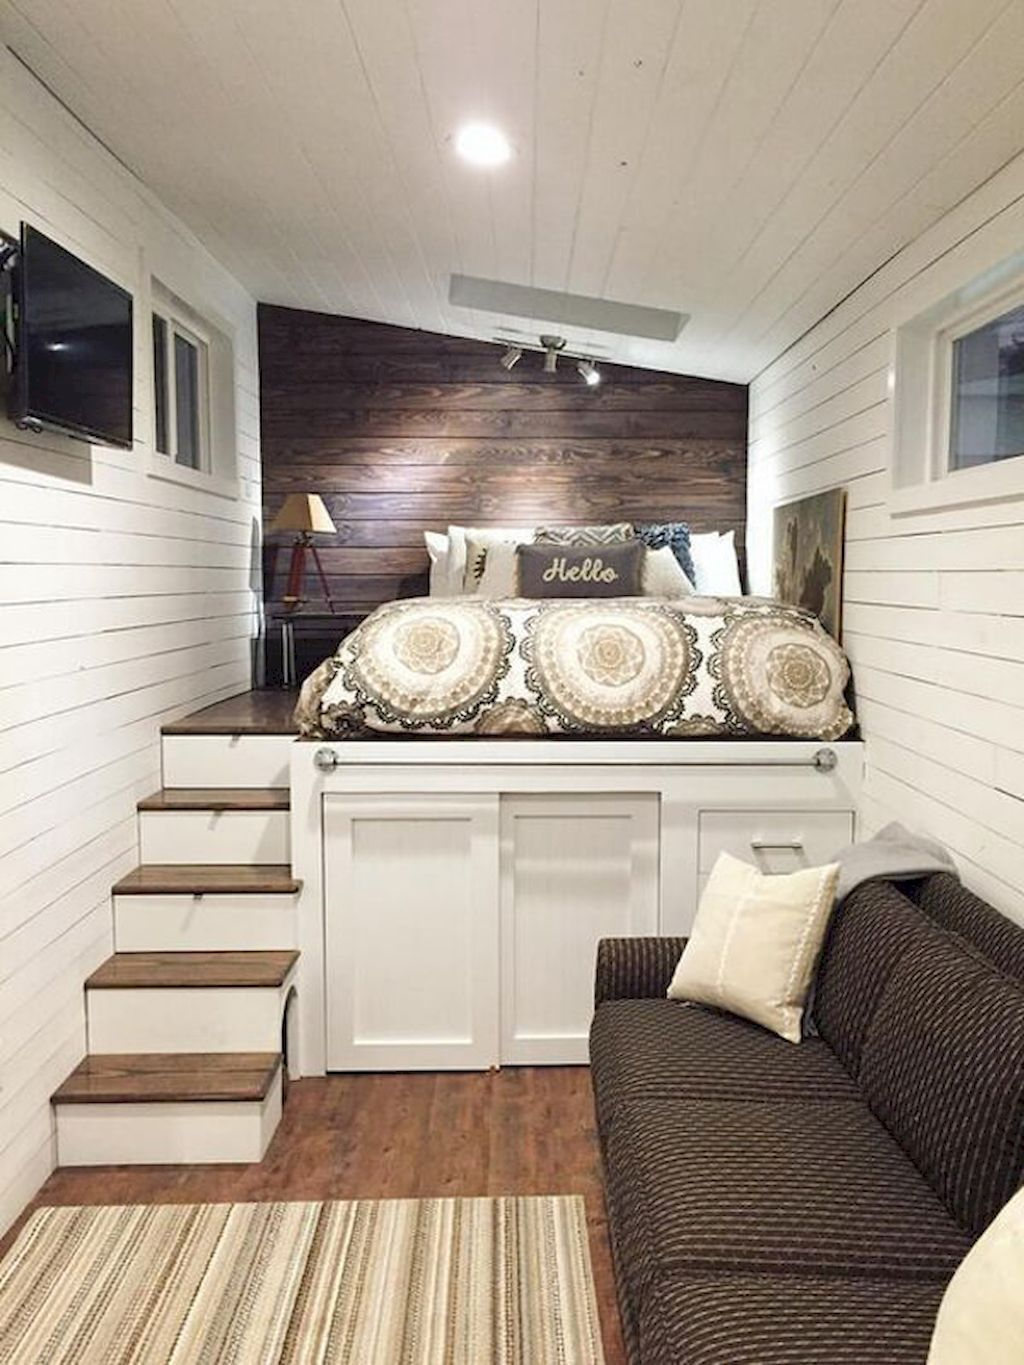 19 A Platform Bed With Storage Below Small Bedroom Tiny House